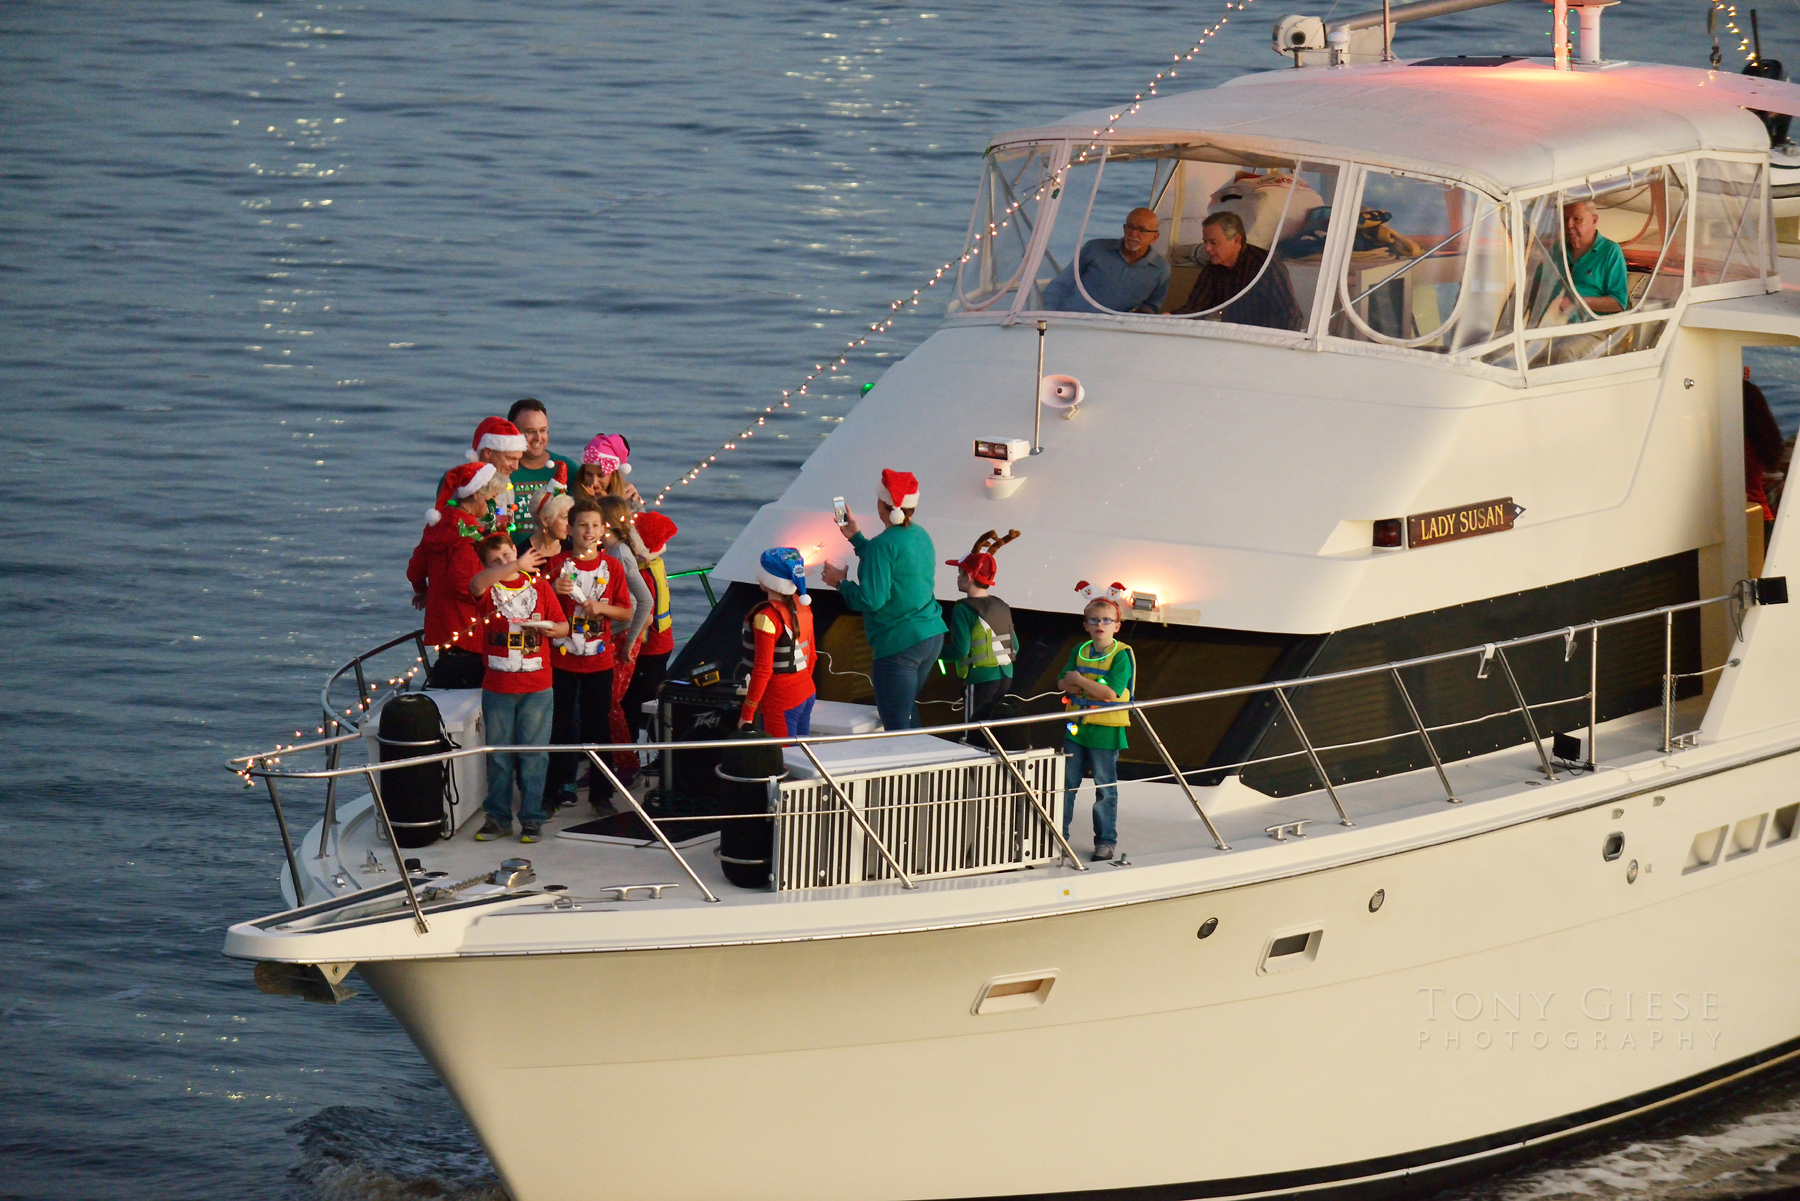 Costumed passengers gather for photograph on front of cruising yacht.